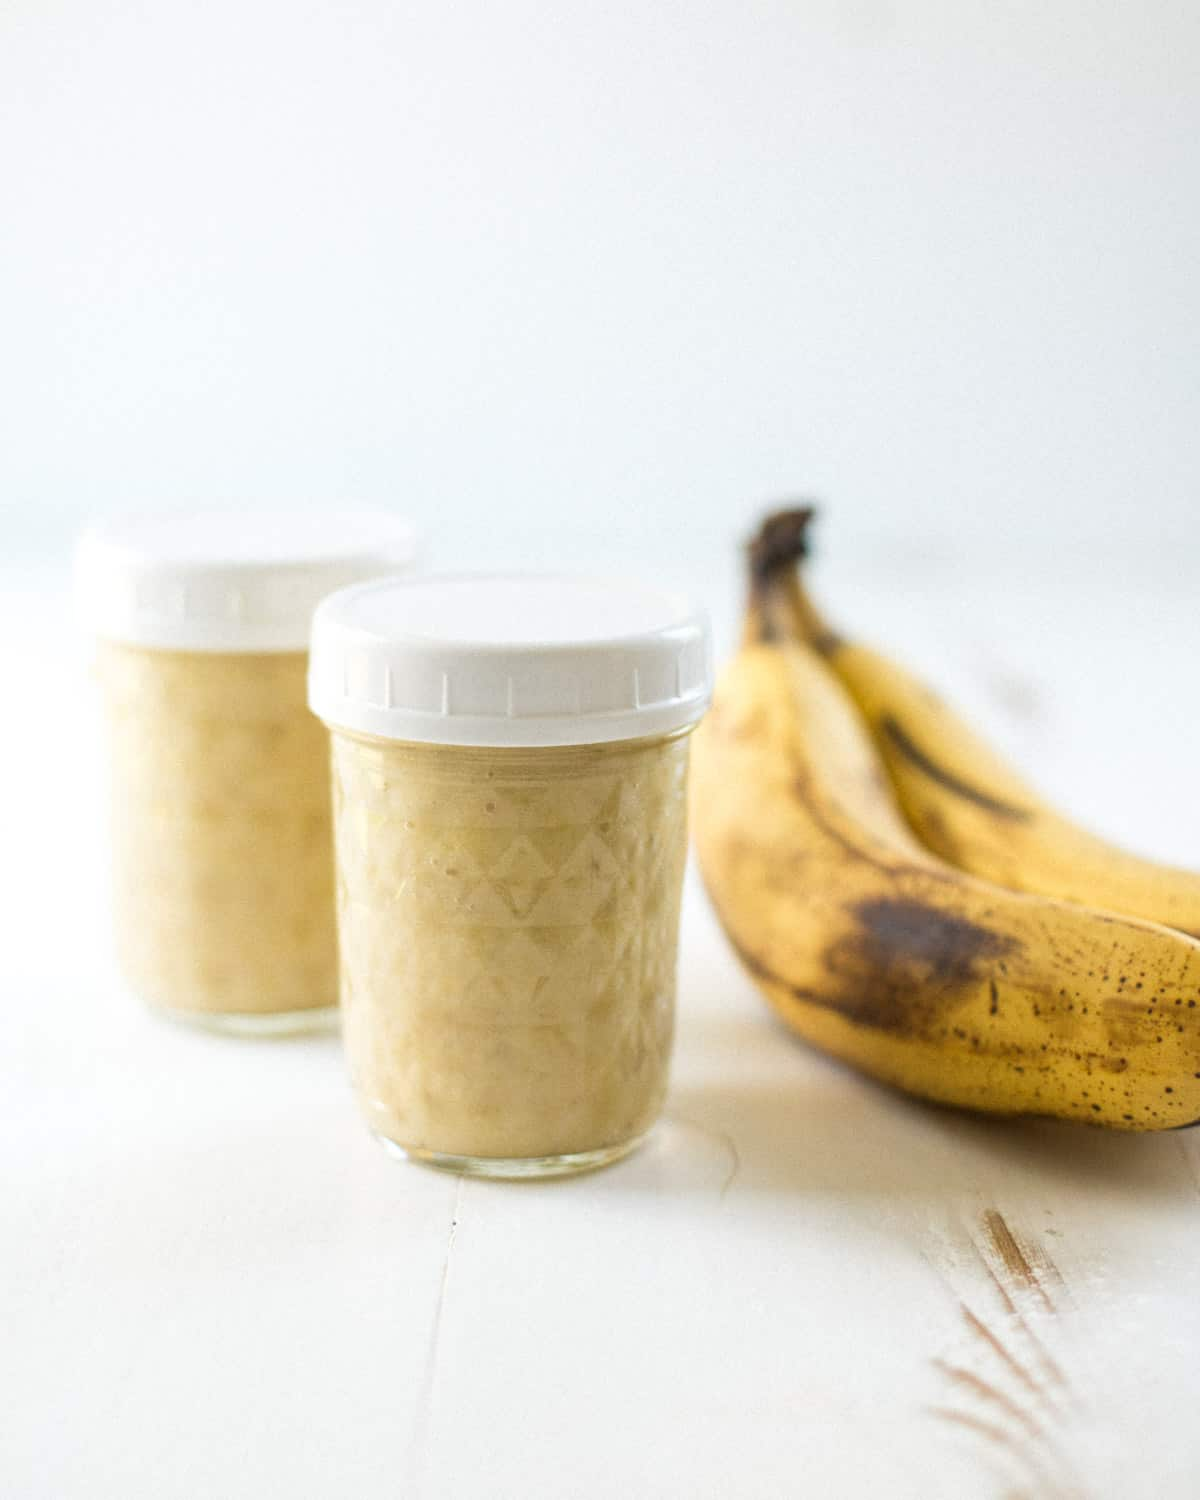 a banana and 2 glass jars on a white table